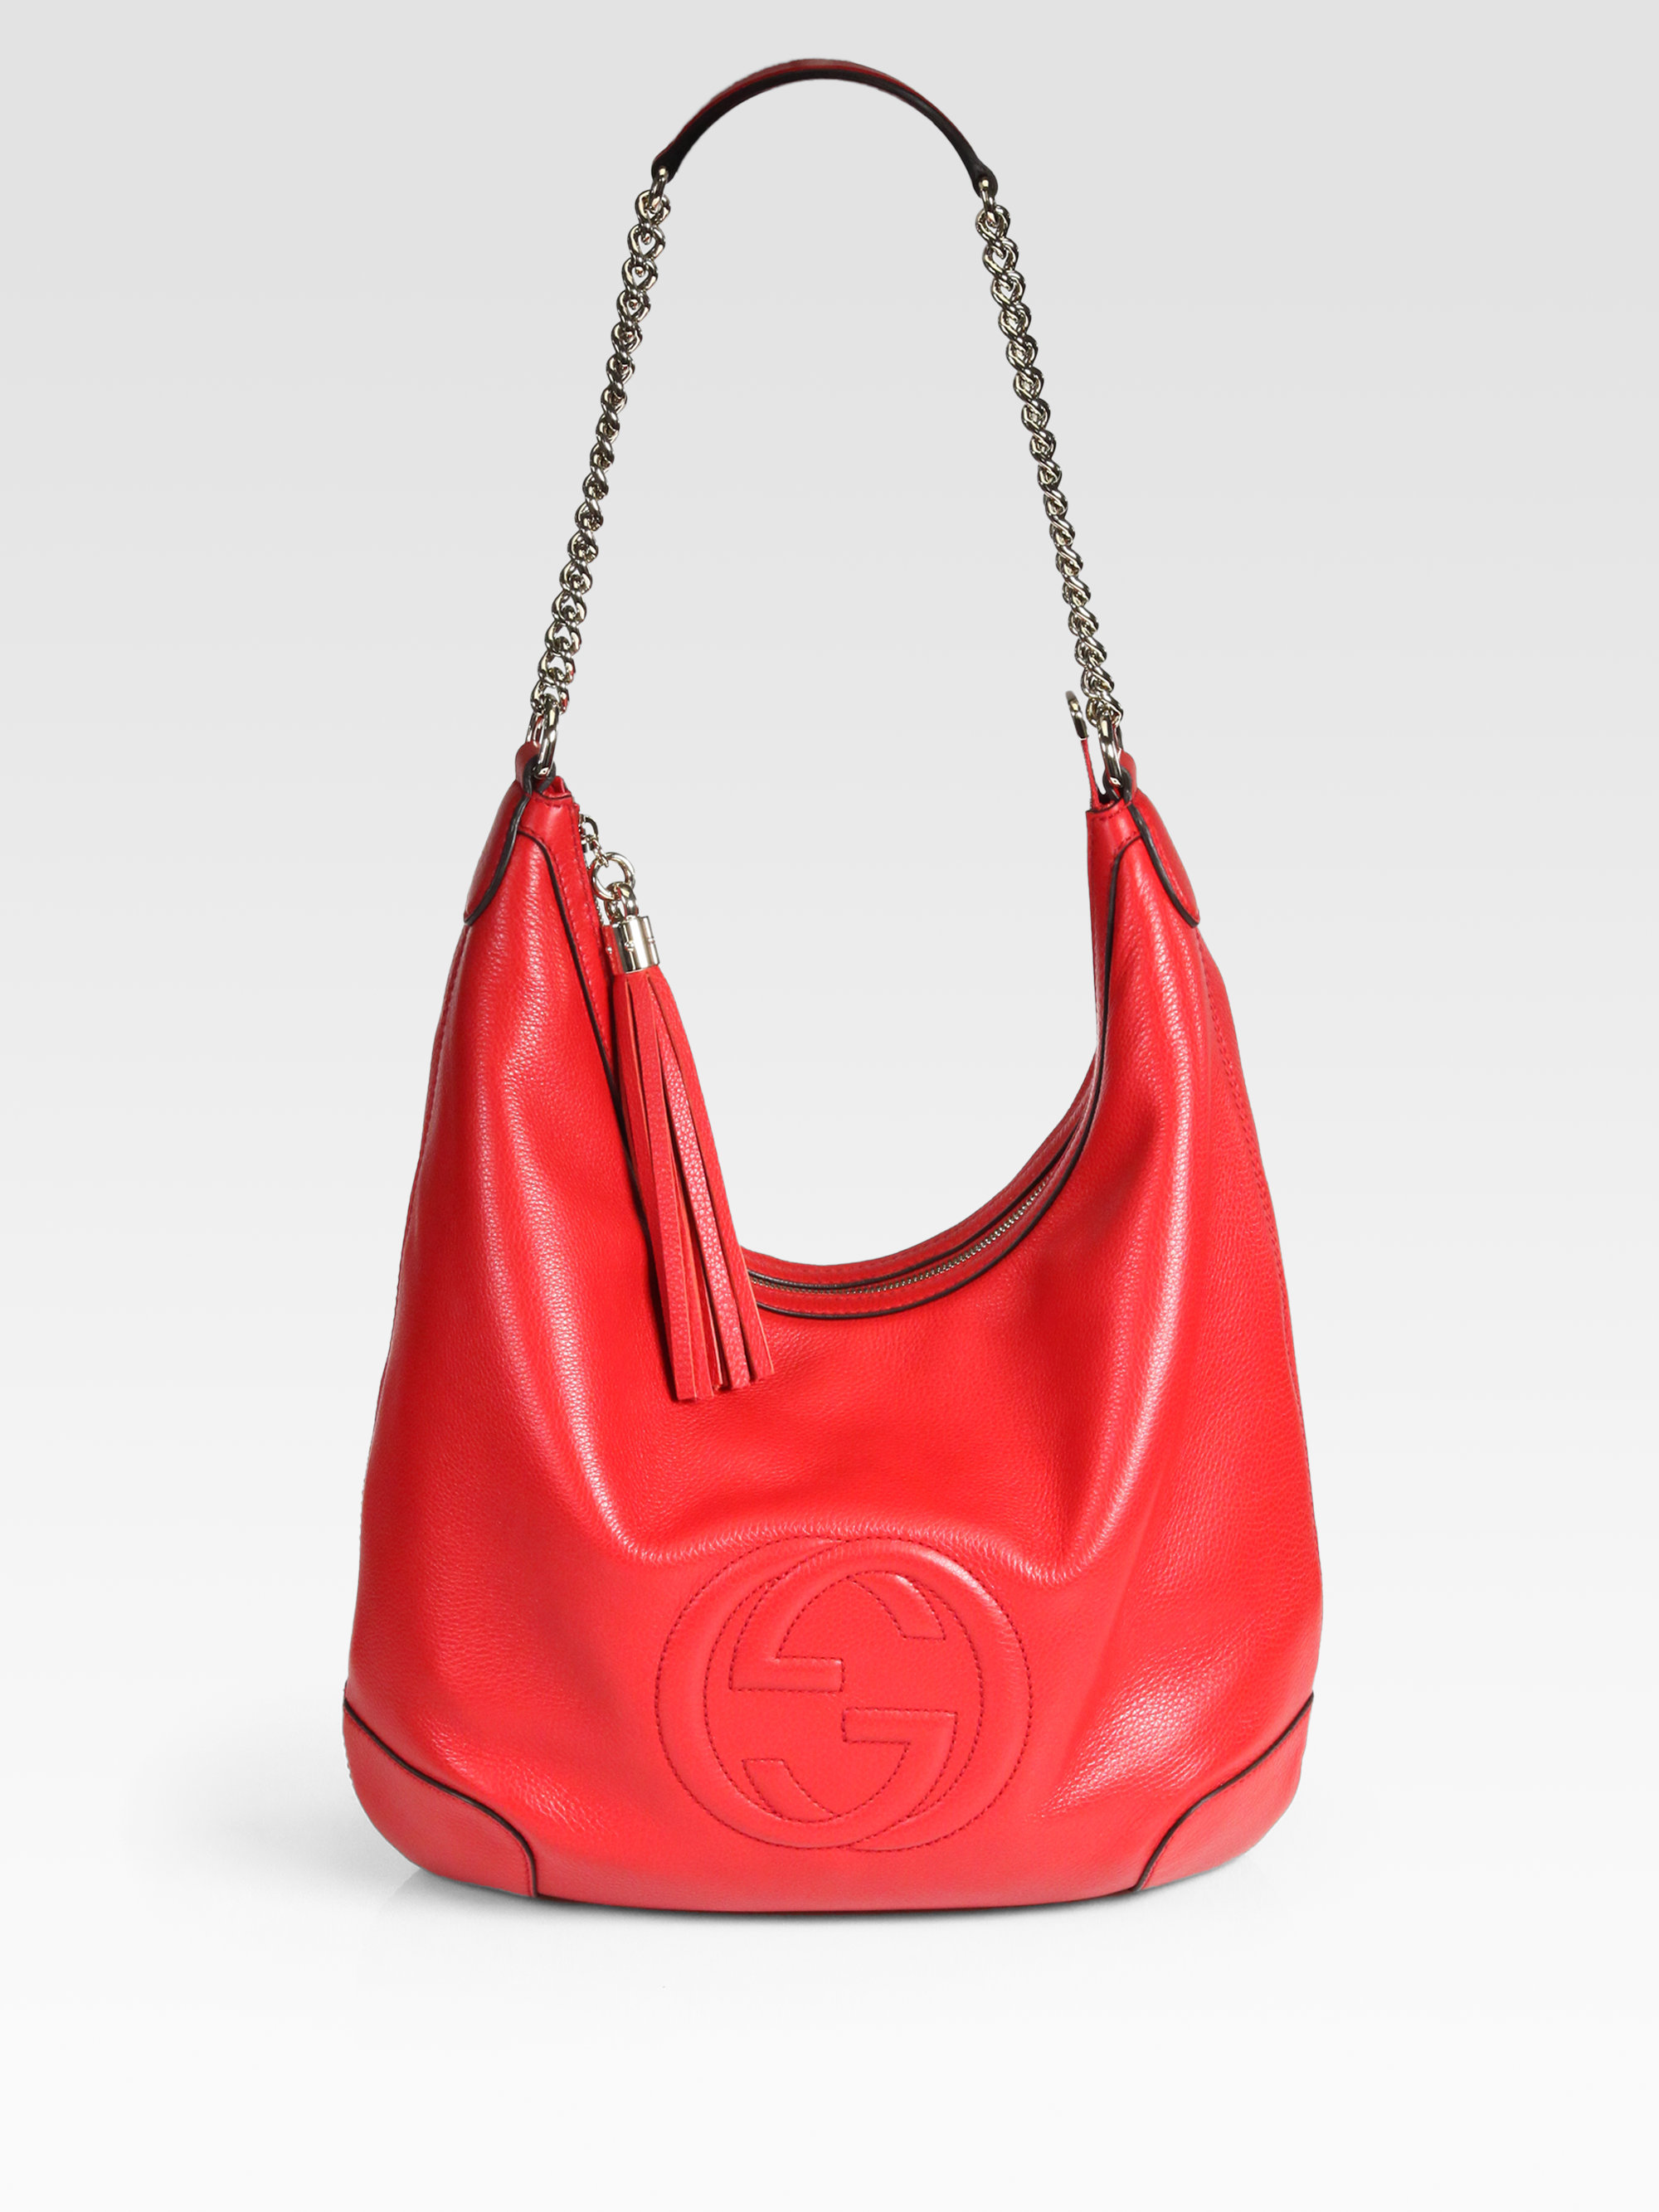 06522958b33c Lyst - Gucci Soho Leather Chain Hobo Bag in Red